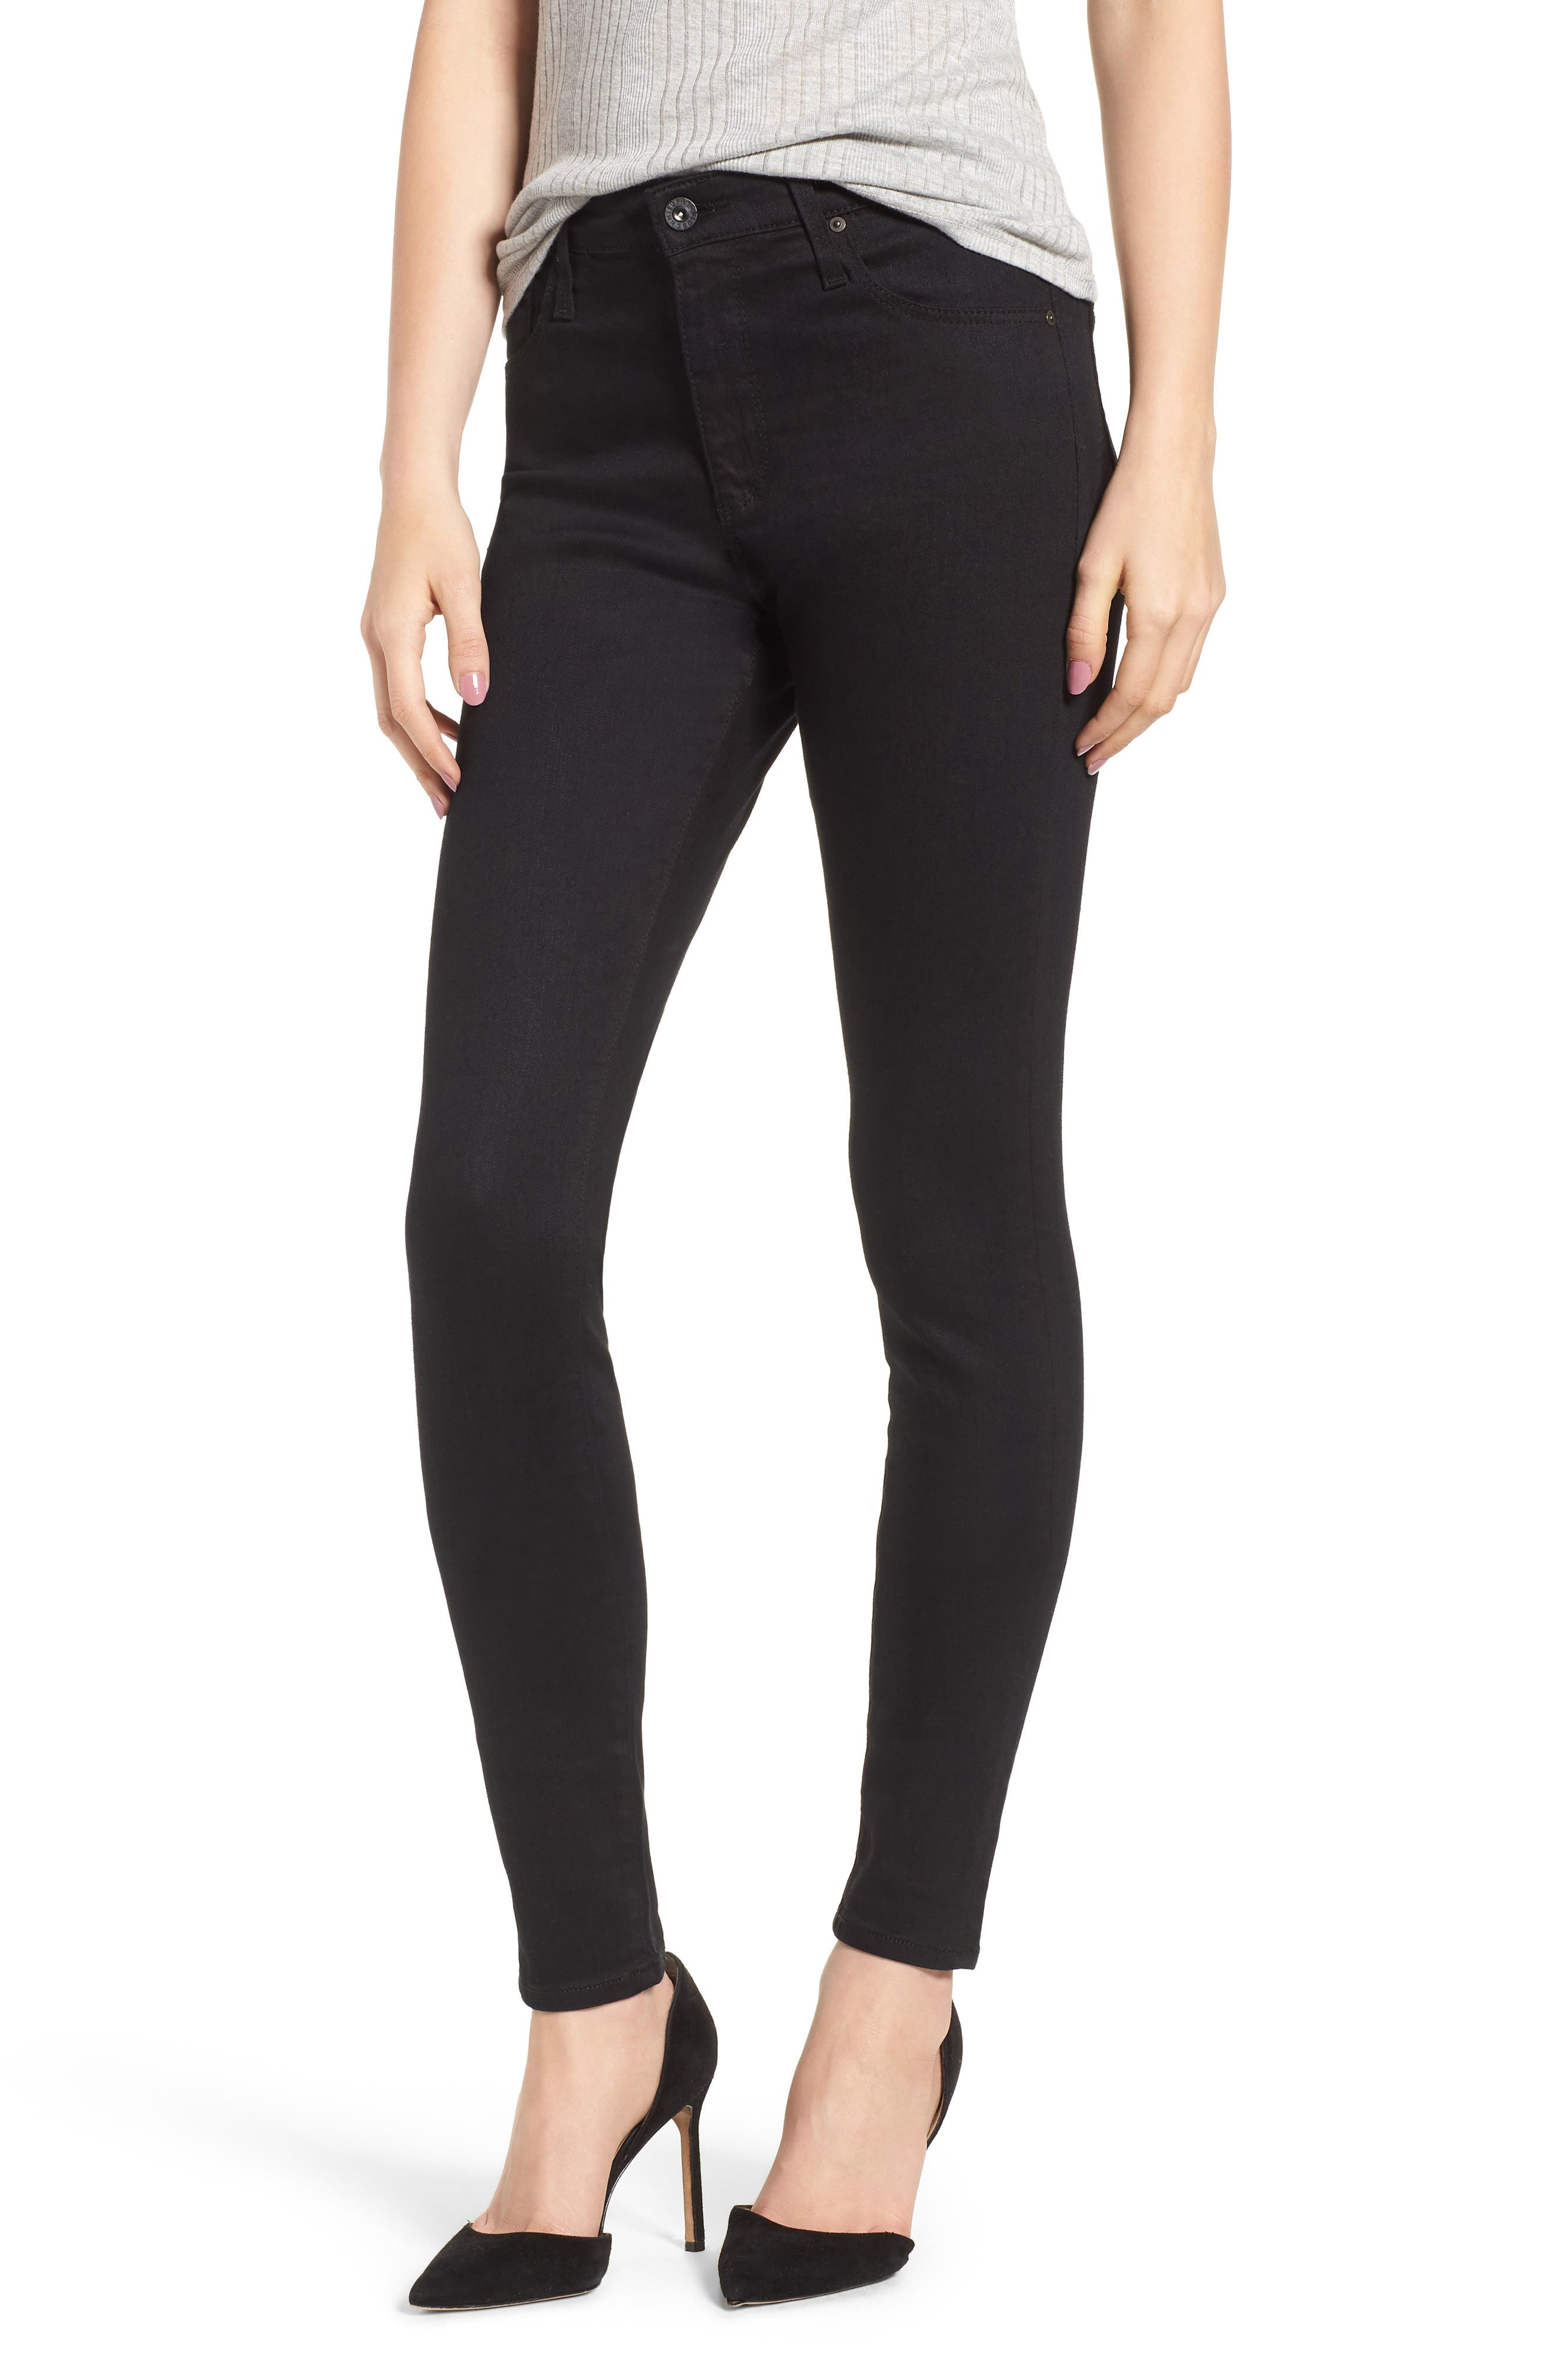 'The Farrah' High Rise Skinny Jeans,                         Main,                         color, Overdyed Black